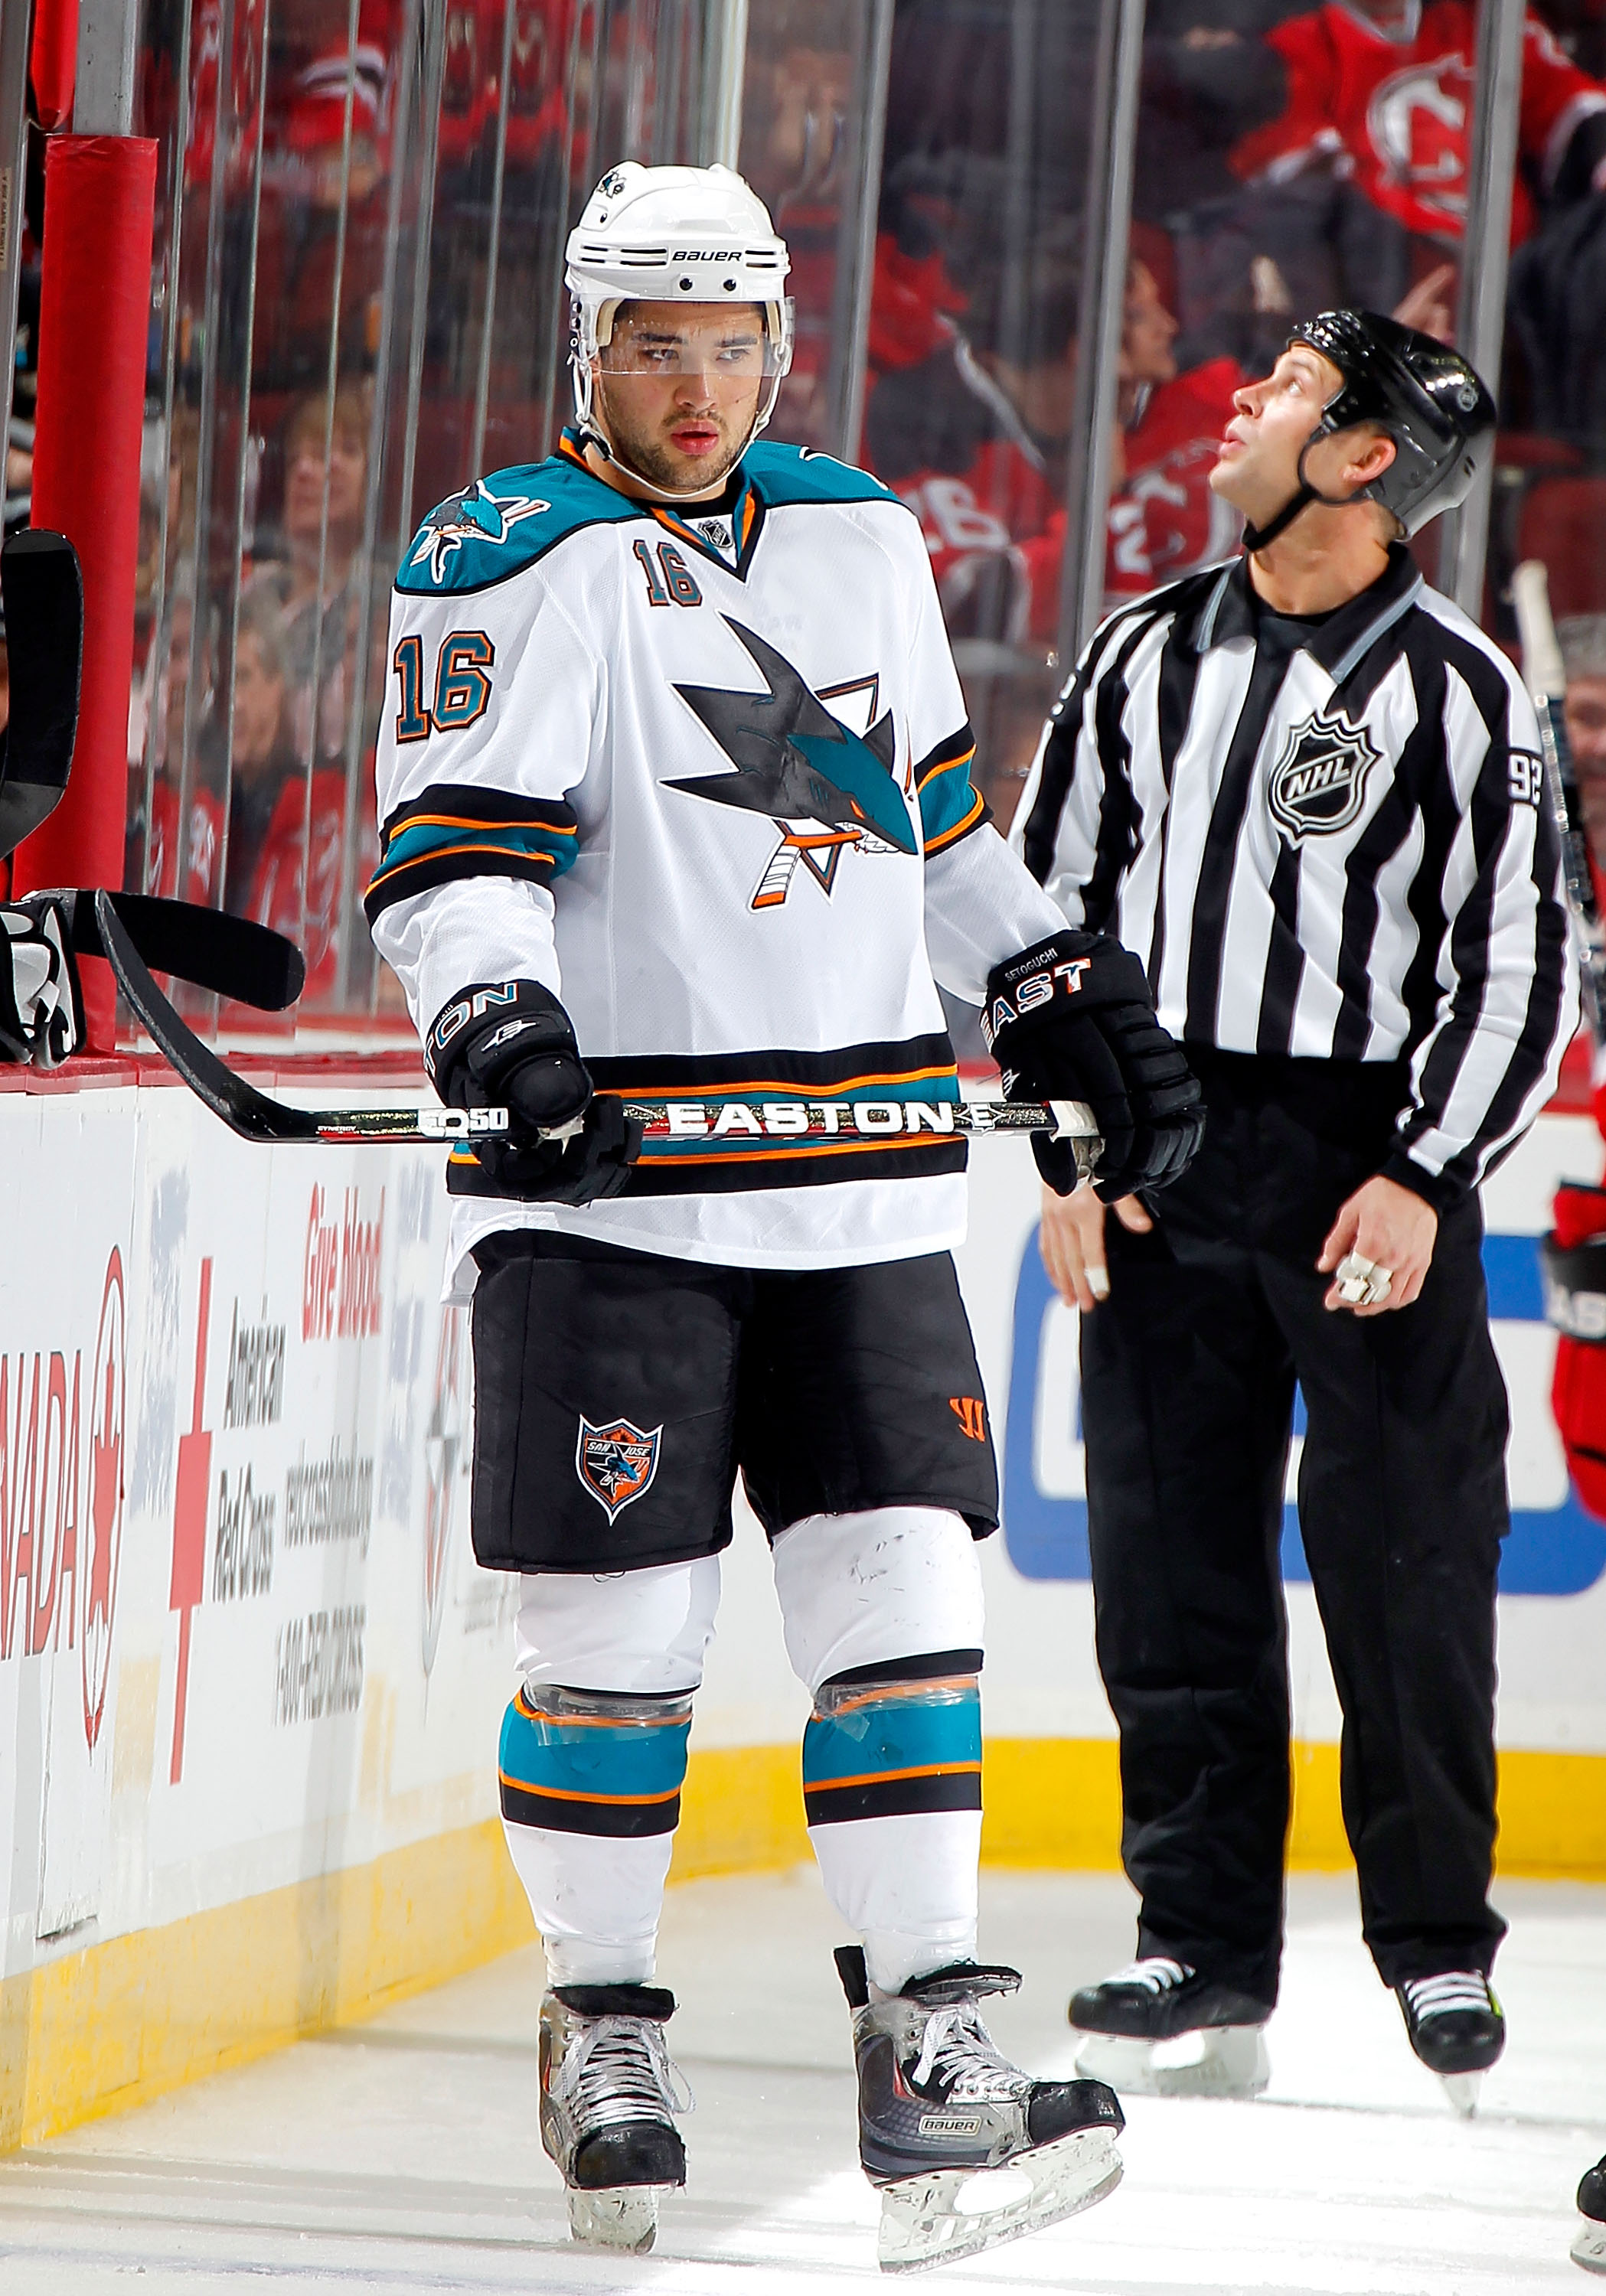 NEWARK, NJ - FEBRUARY 11: Devin Setoguchi #16 of the San Jose Sharks waits for a faceoff in an NHL hockey game against the New Jersey Devils on February 11, 2011 at the Prudential Center in Newark, New Jersey. (Photo by Paul Bereswill/Getty Images)